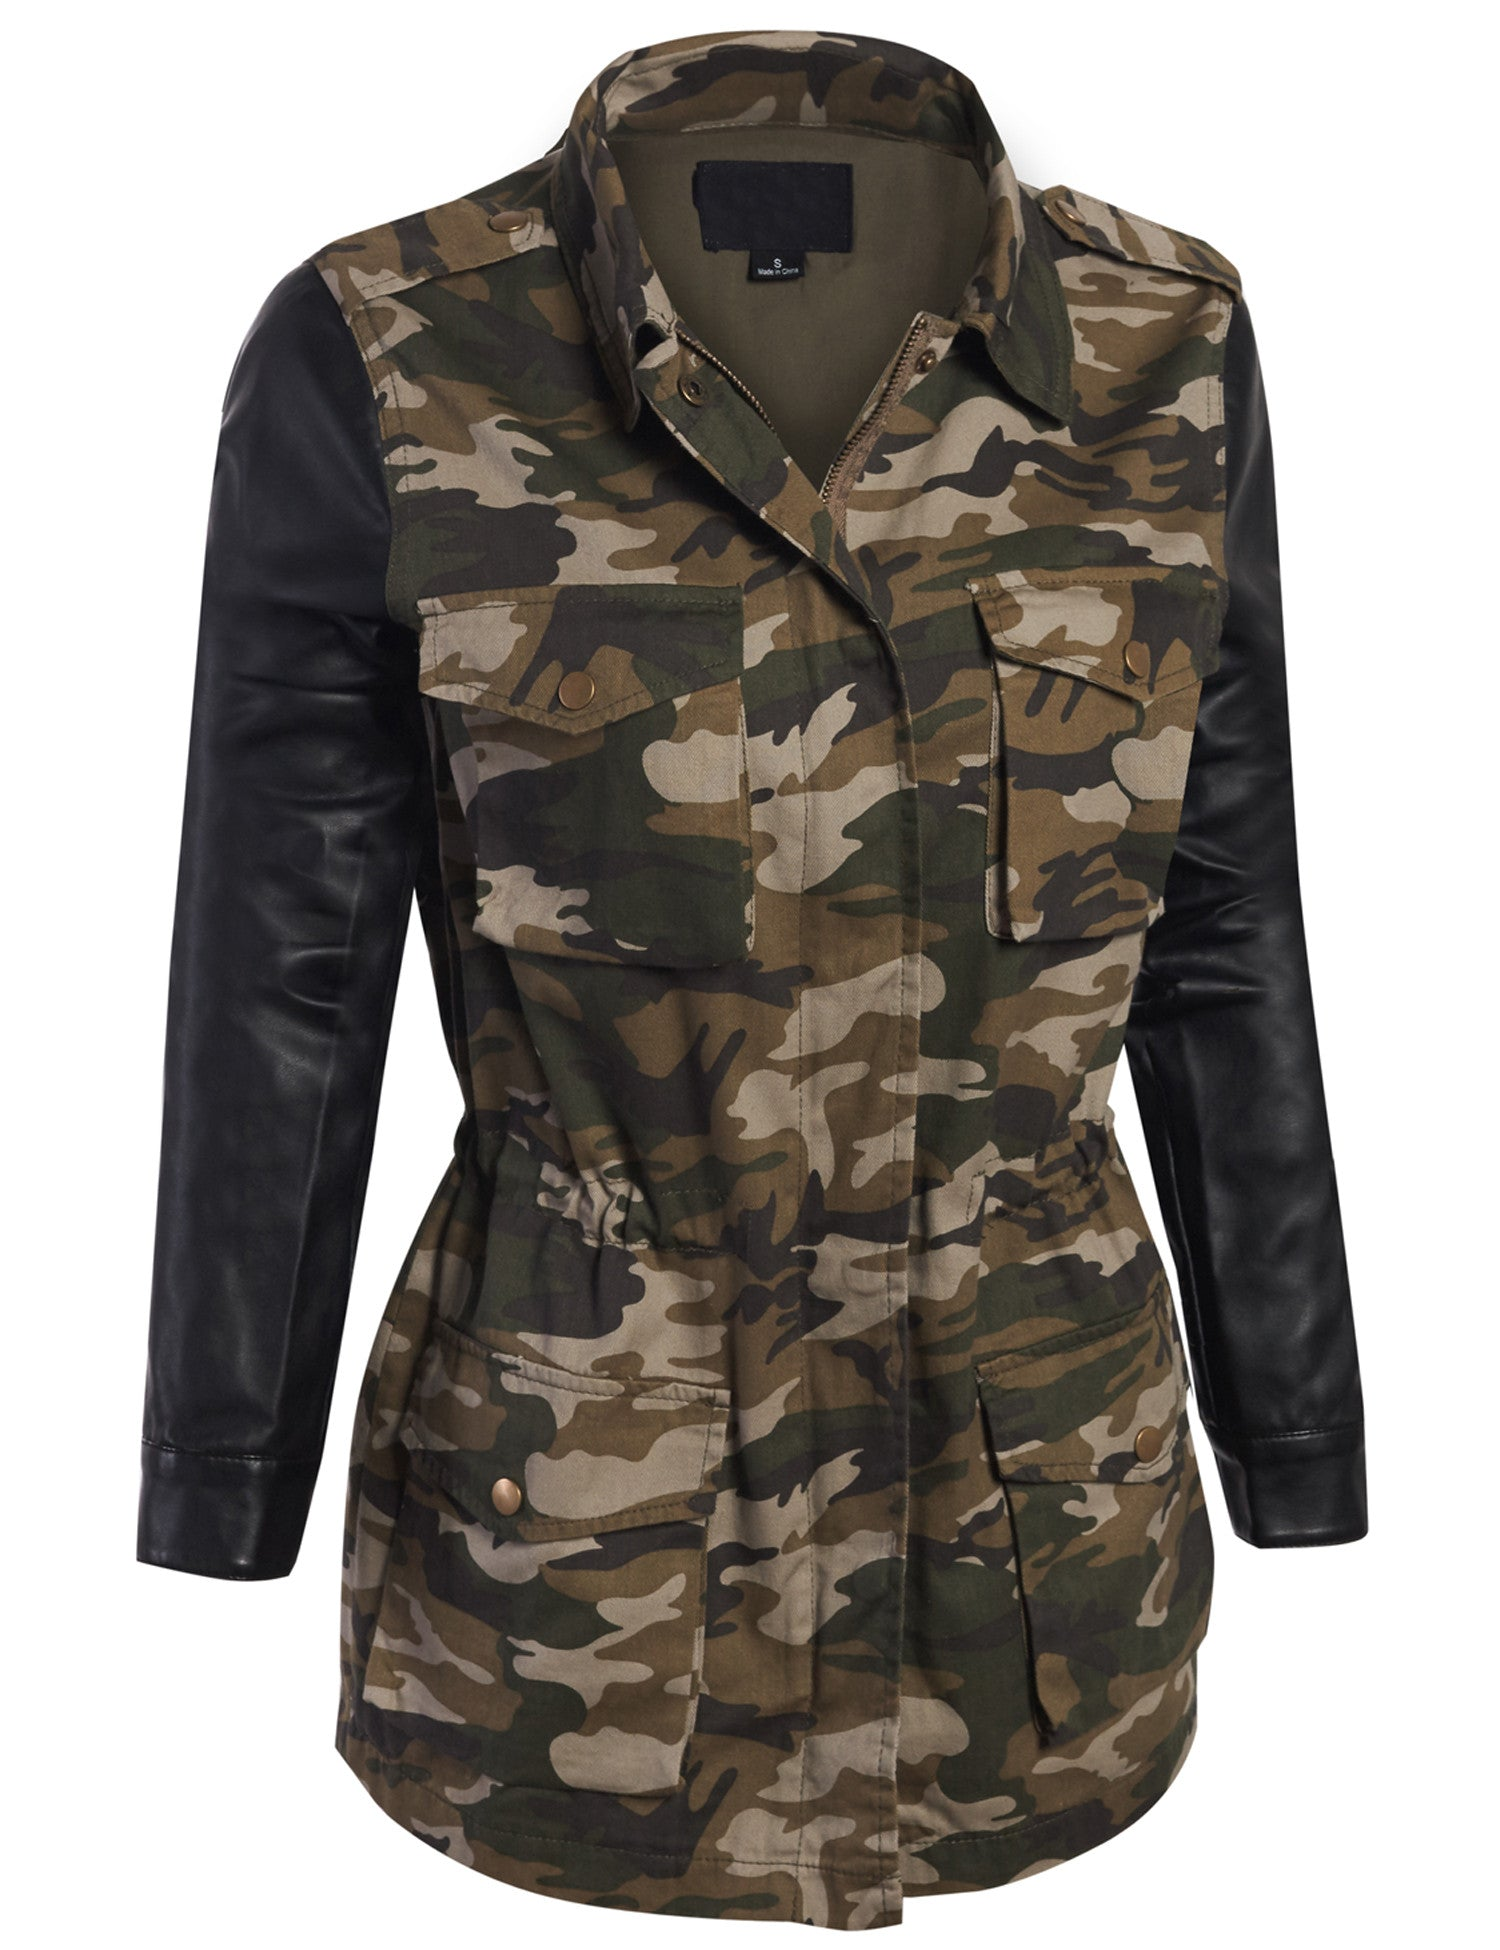 Camouflage jacket with leather sleeves